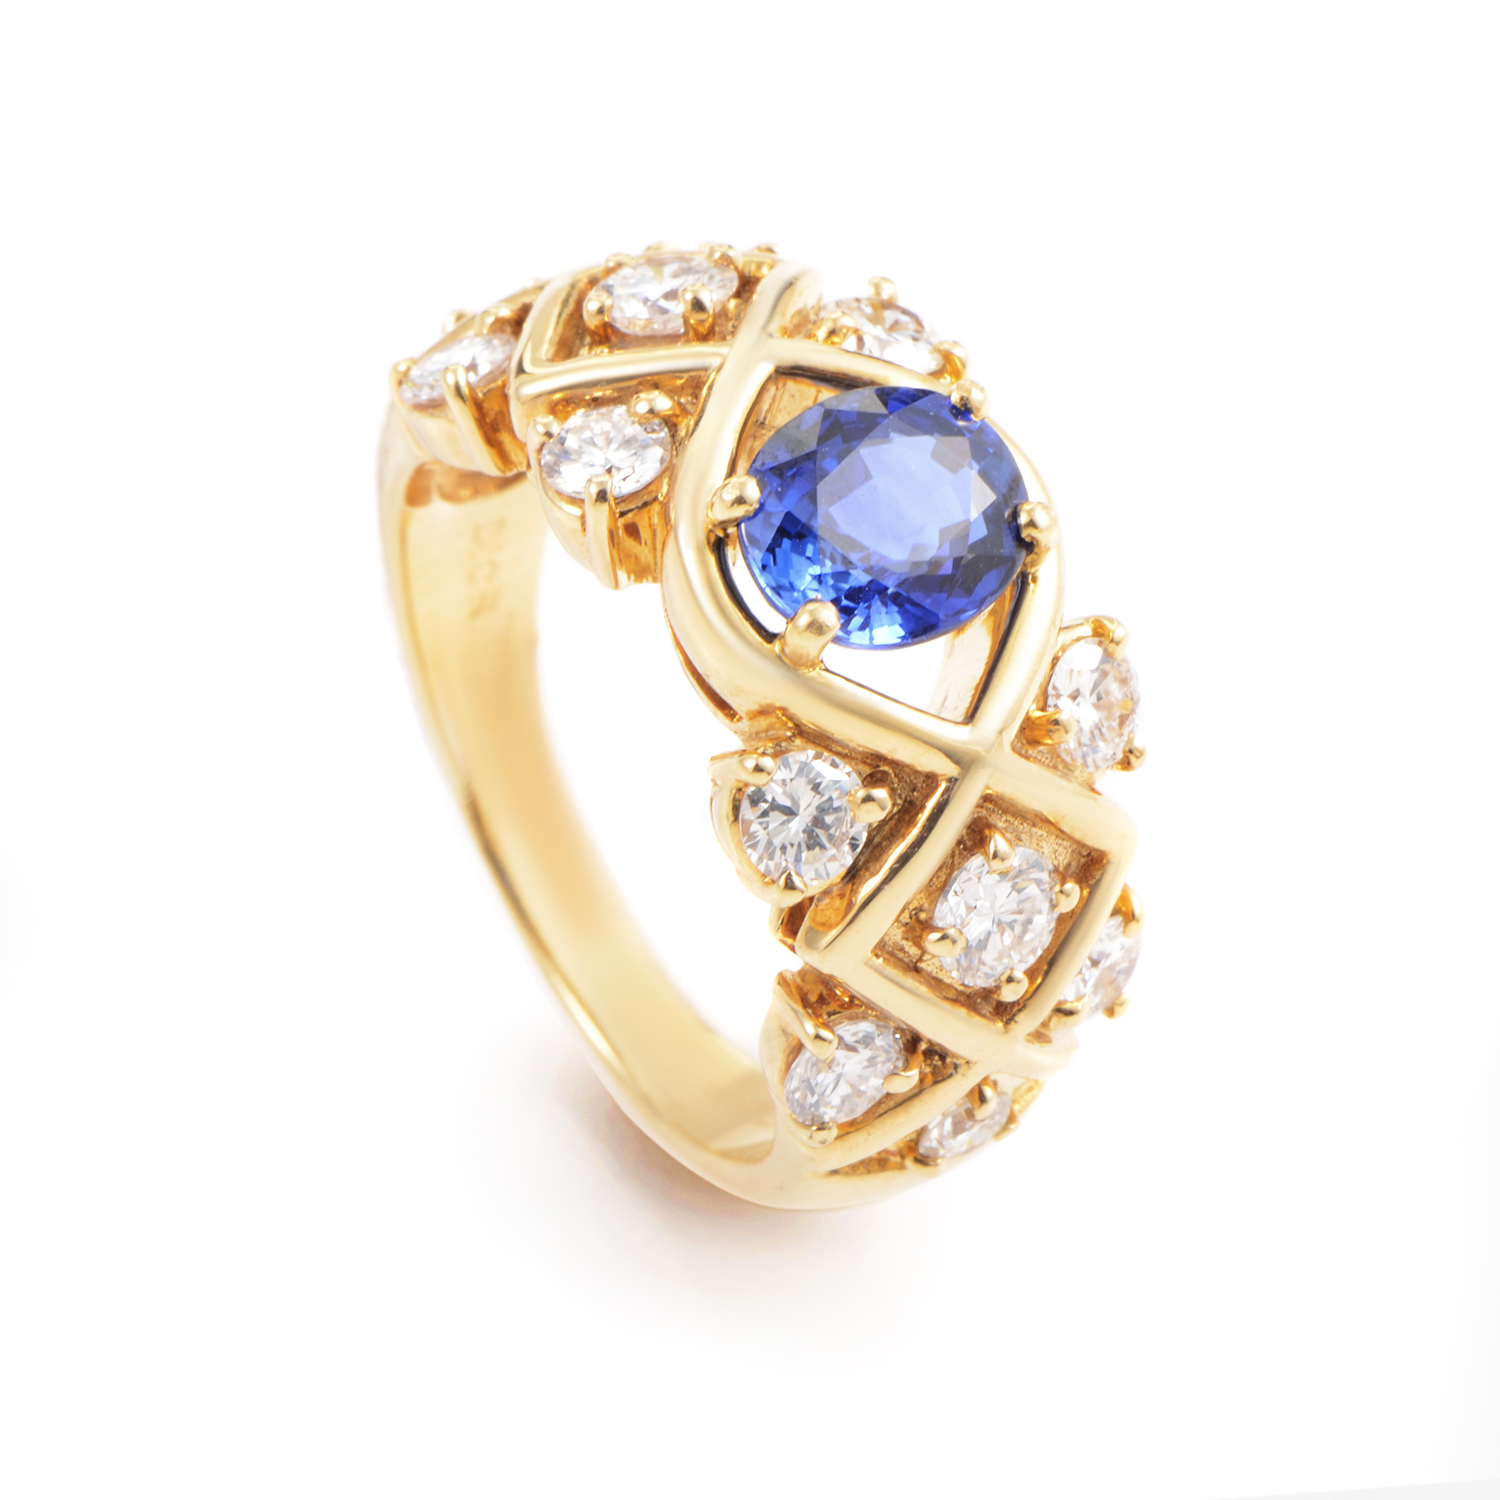 Dior 18K Yellow Gold Diamond and Sapphire Ring